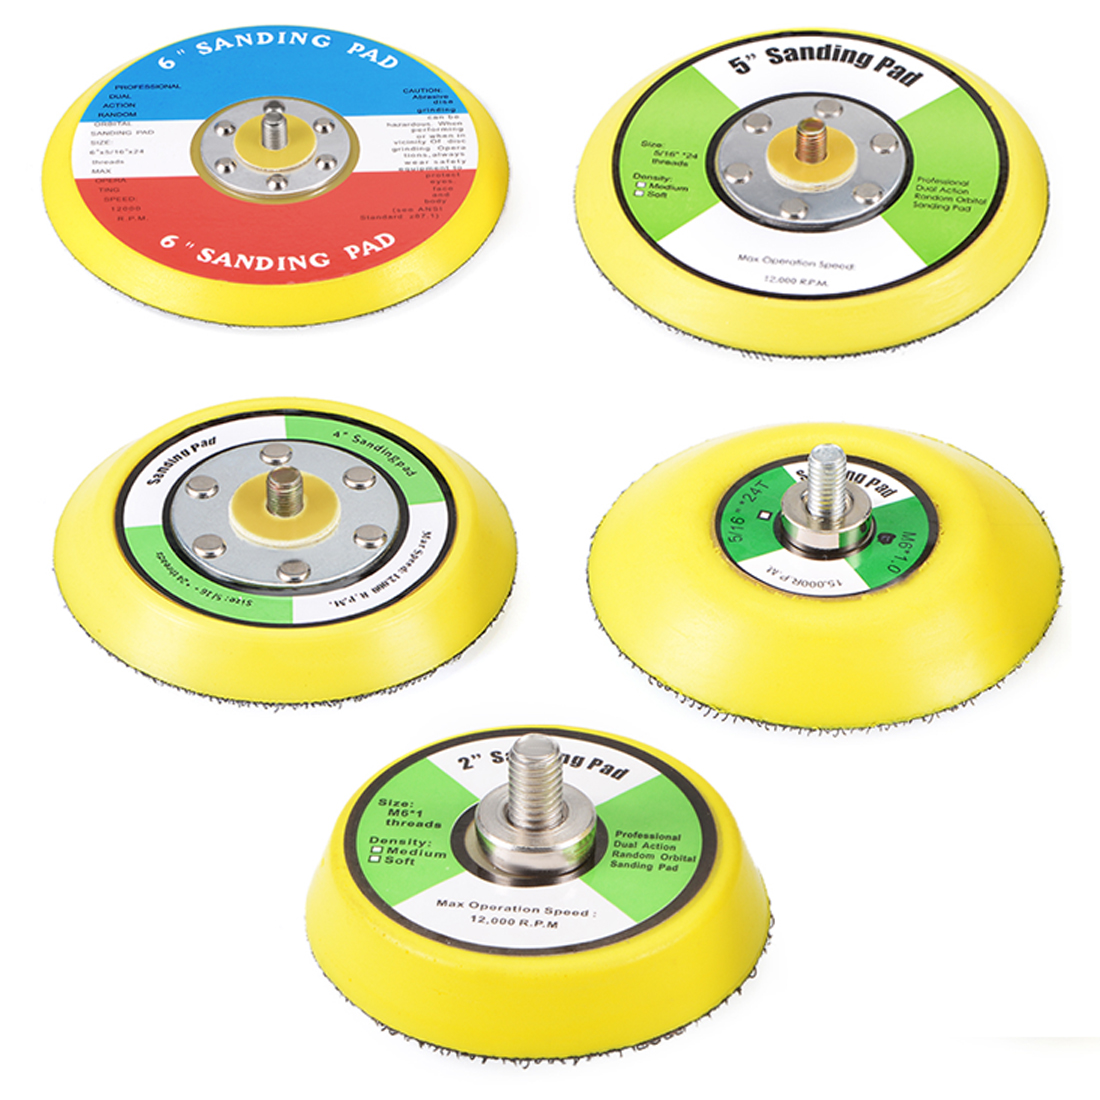 Uxcell 2/3/4/5/6 Inch Hook And Loop Sanding Pad M6*10mm Thread Sandpaper Backing Plate To Sanders Polishers Buffers 2Pcs